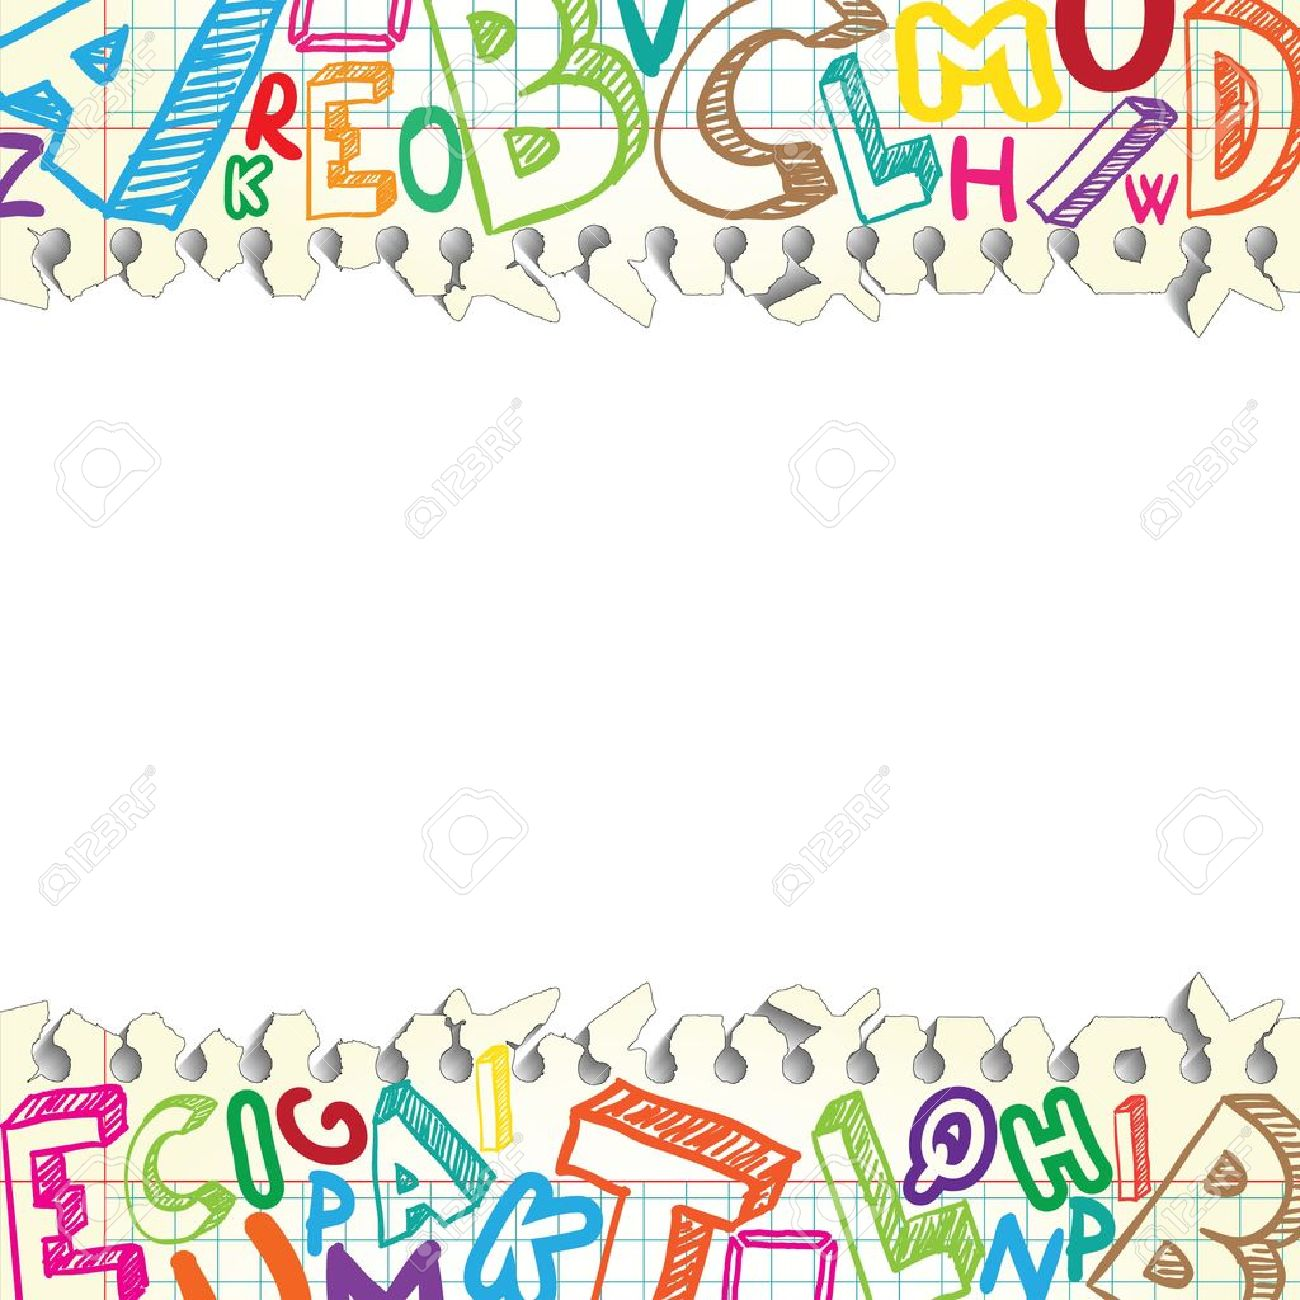 Background Made Of Papers With Colorful Letters Royalty 1300x1300